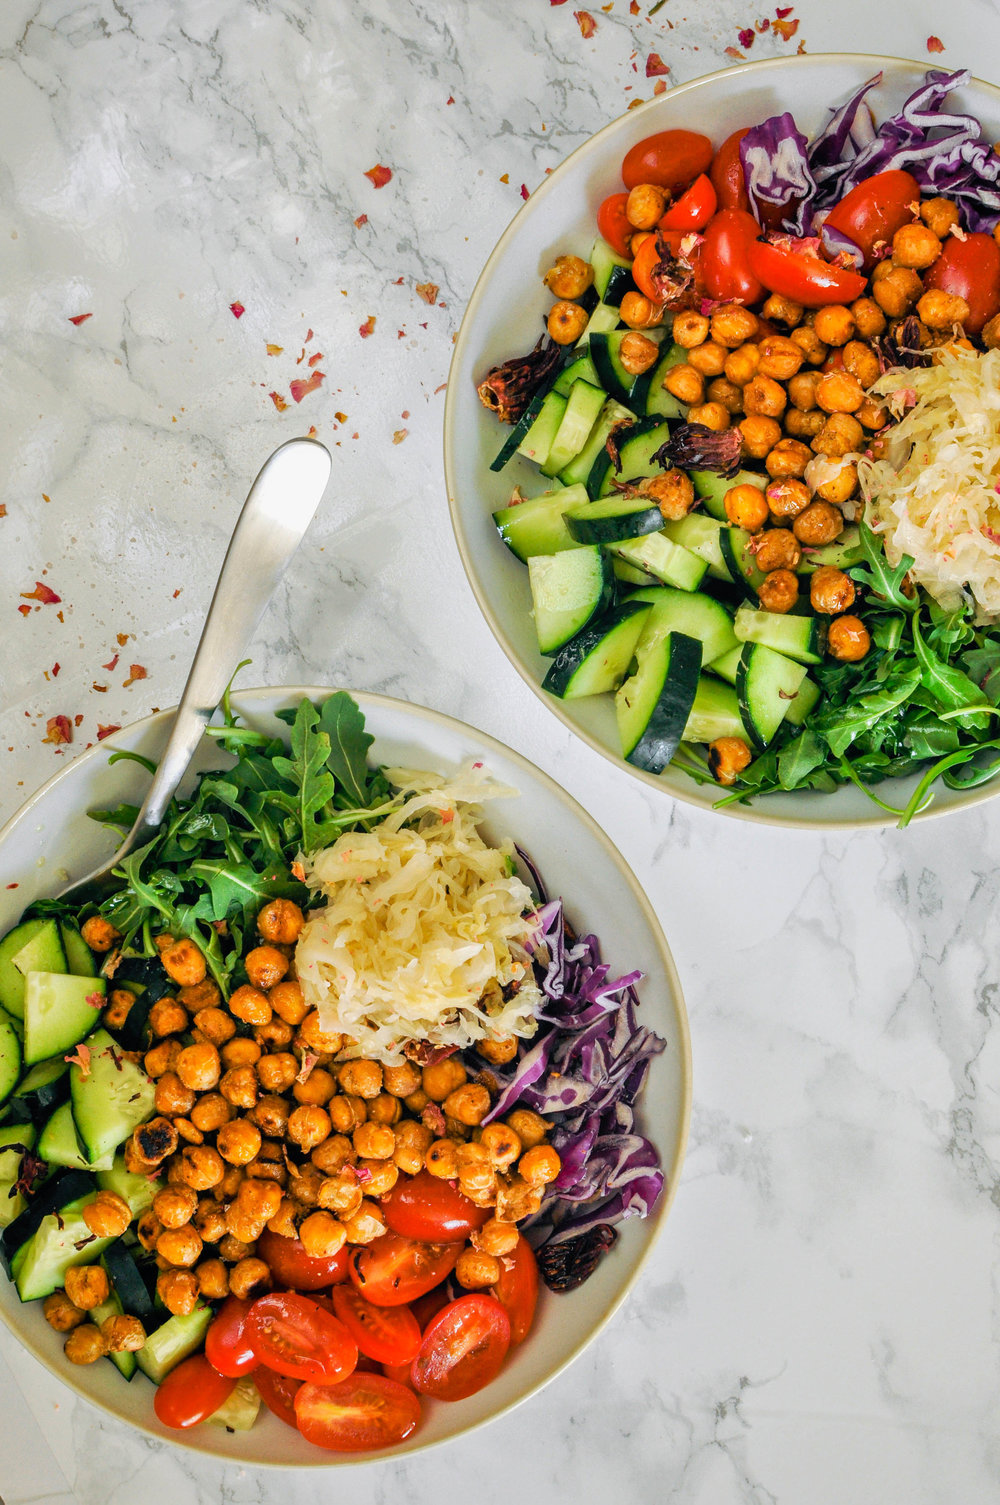 Chickpea Power Bowl Recipe - This vegan chickpea power bowl is full of flavor!